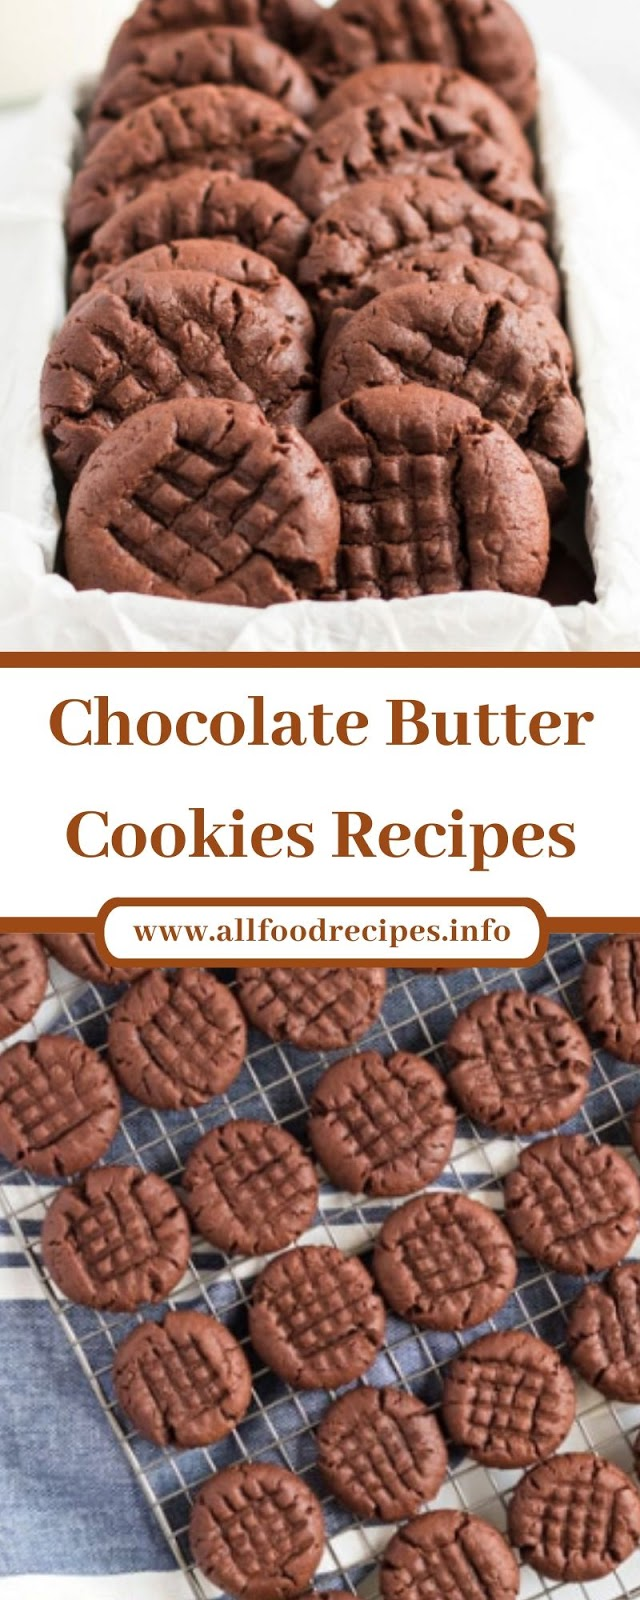 Chocolate Butter Cookies Recipes